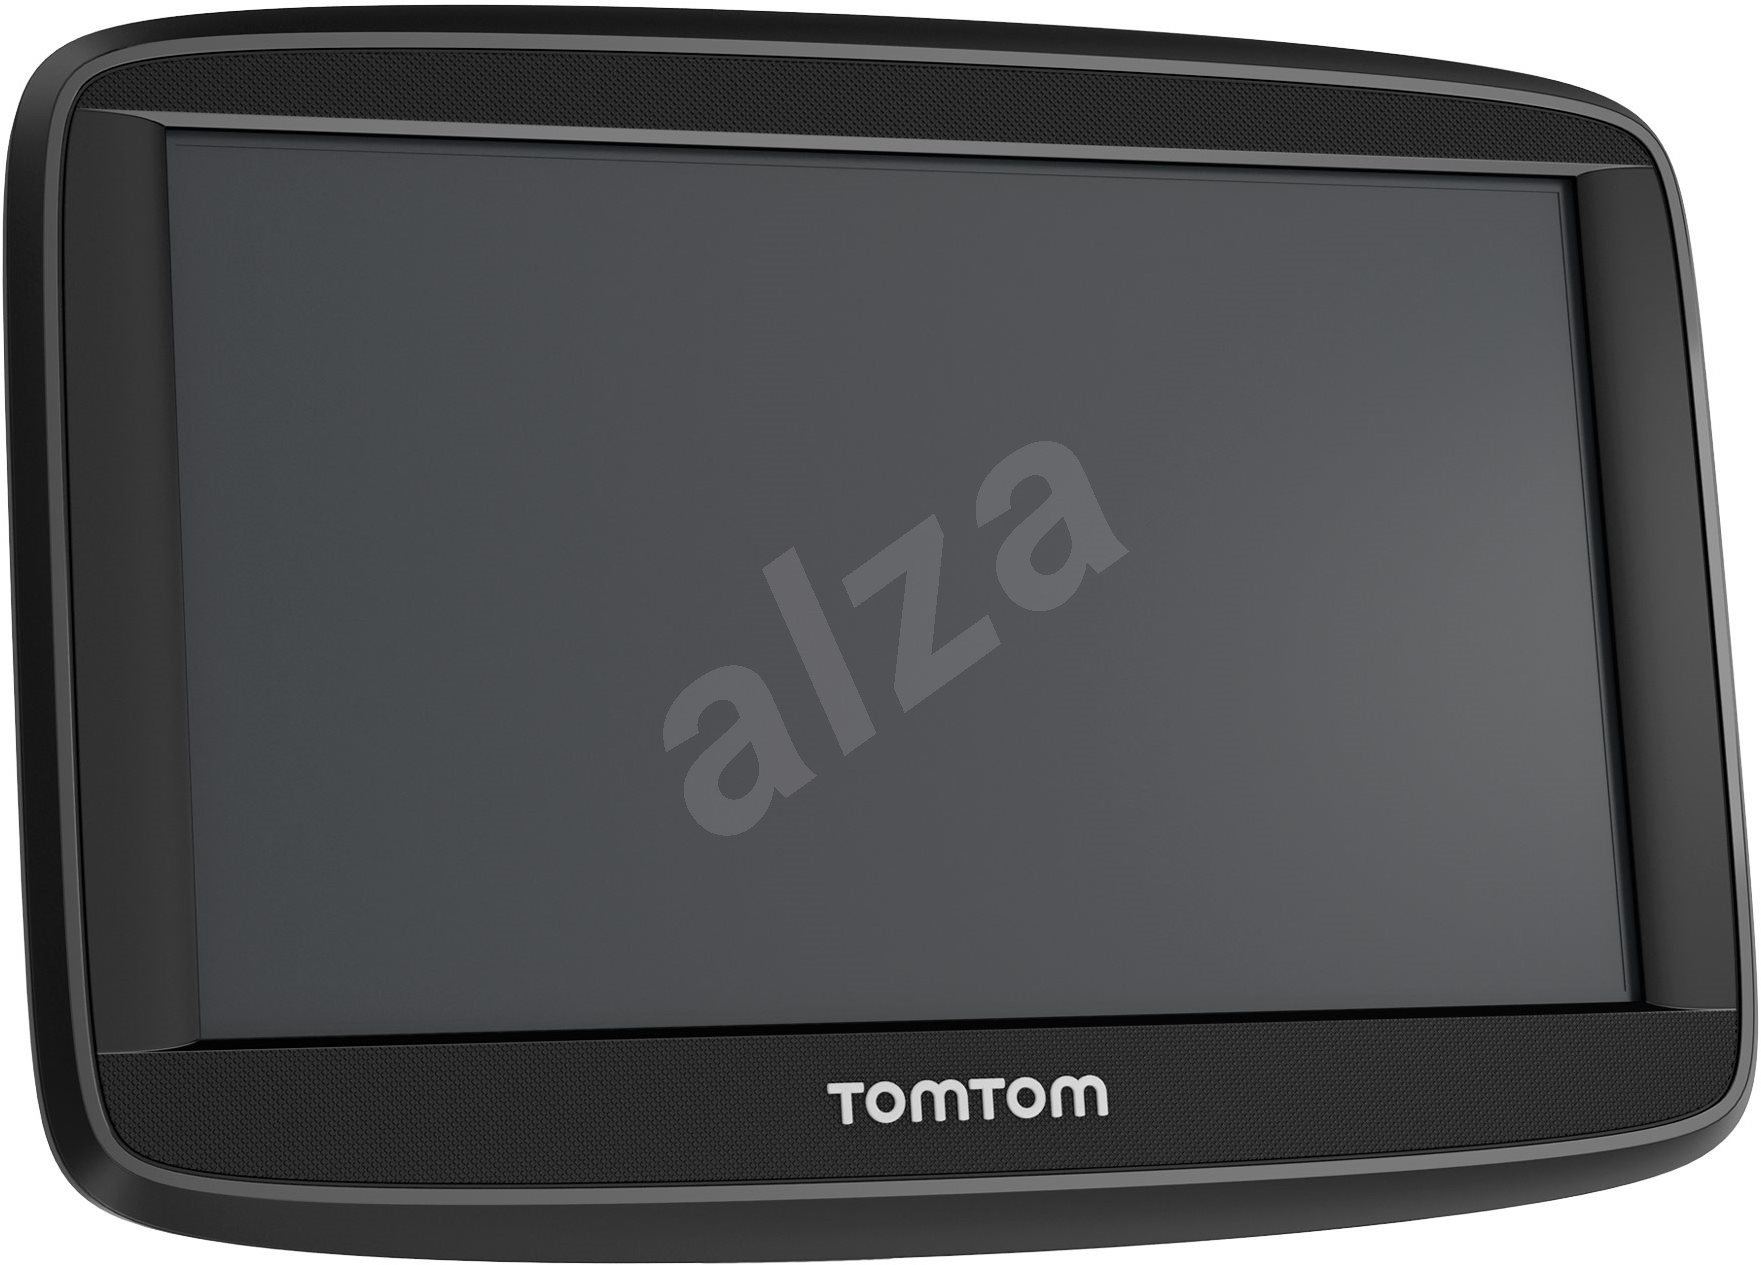 gps navigationsger t tomtom via 62 mit lebenslangen. Black Bedroom Furniture Sets. Home Design Ideas